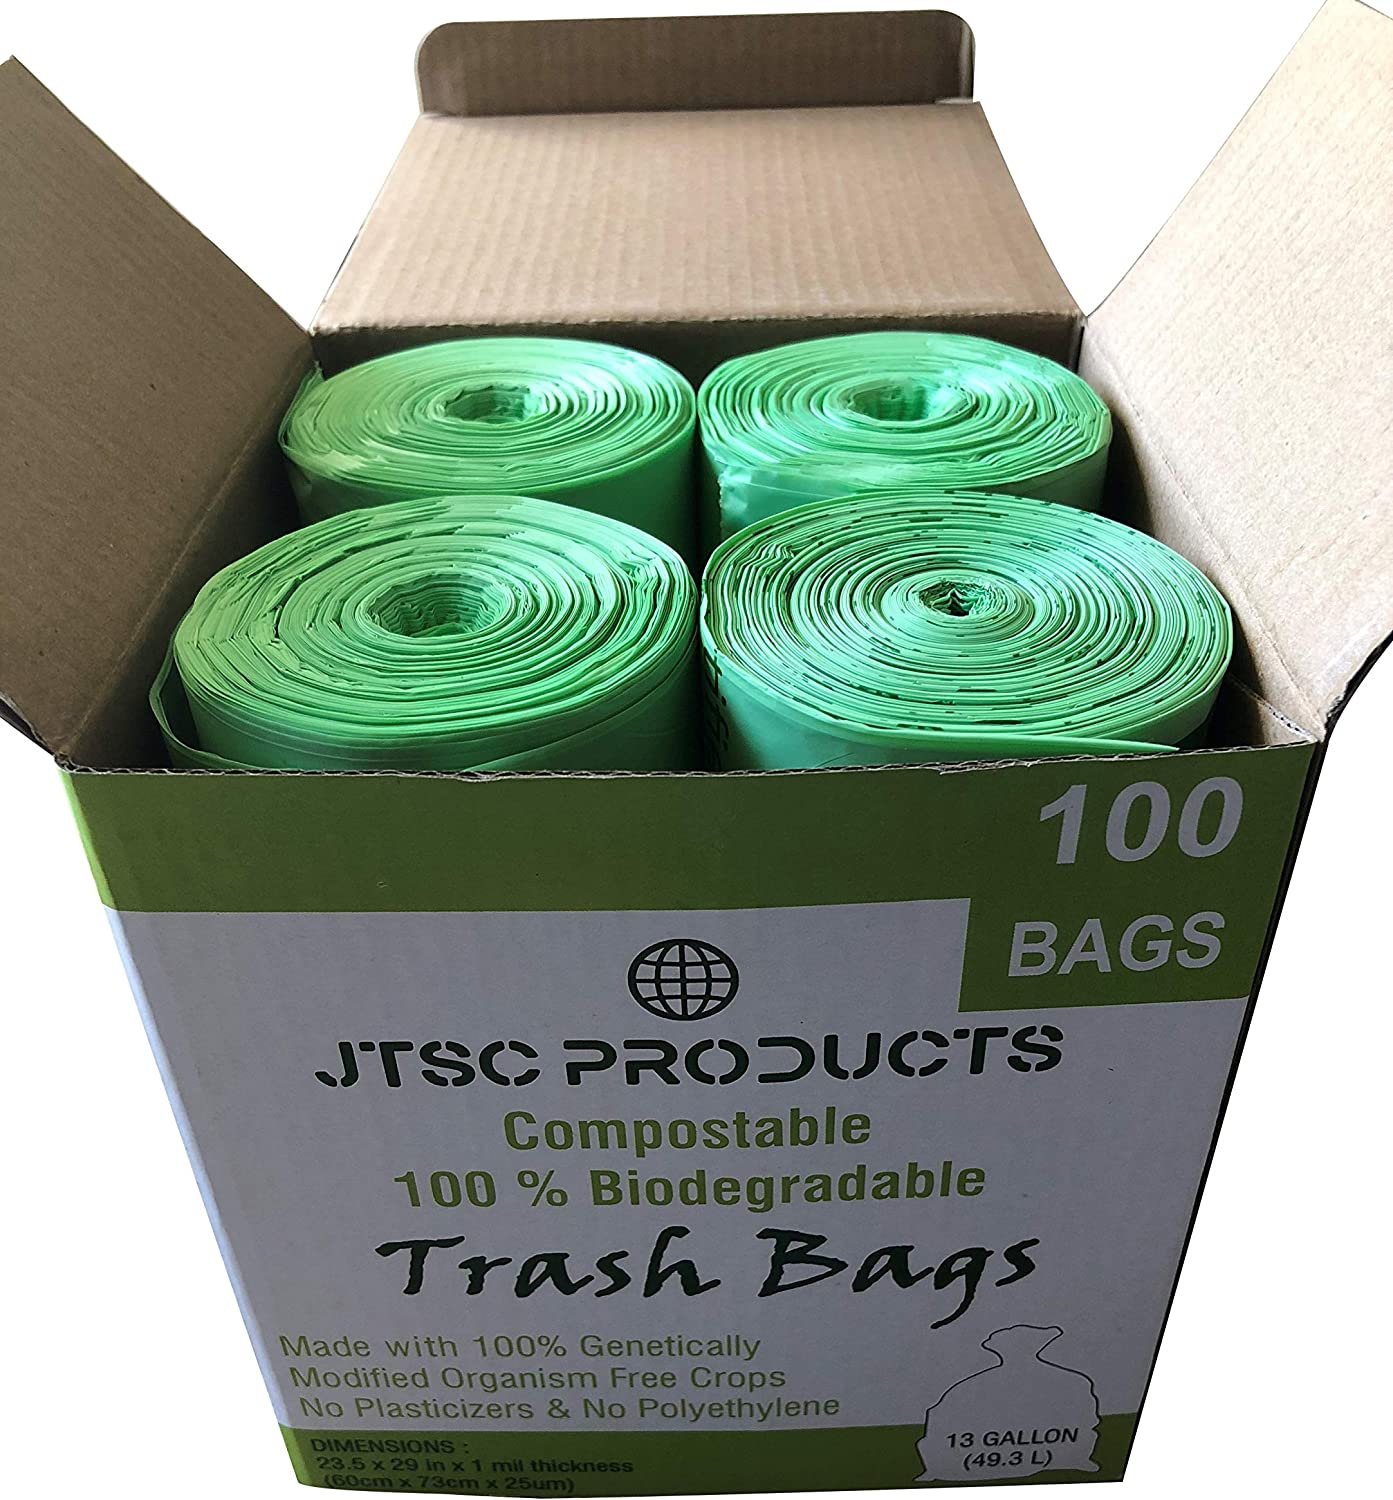 Details about  /Primode 100/% Compostable Bags 13 Gallon Tall Kitchen Biodegradable Trash Bags,